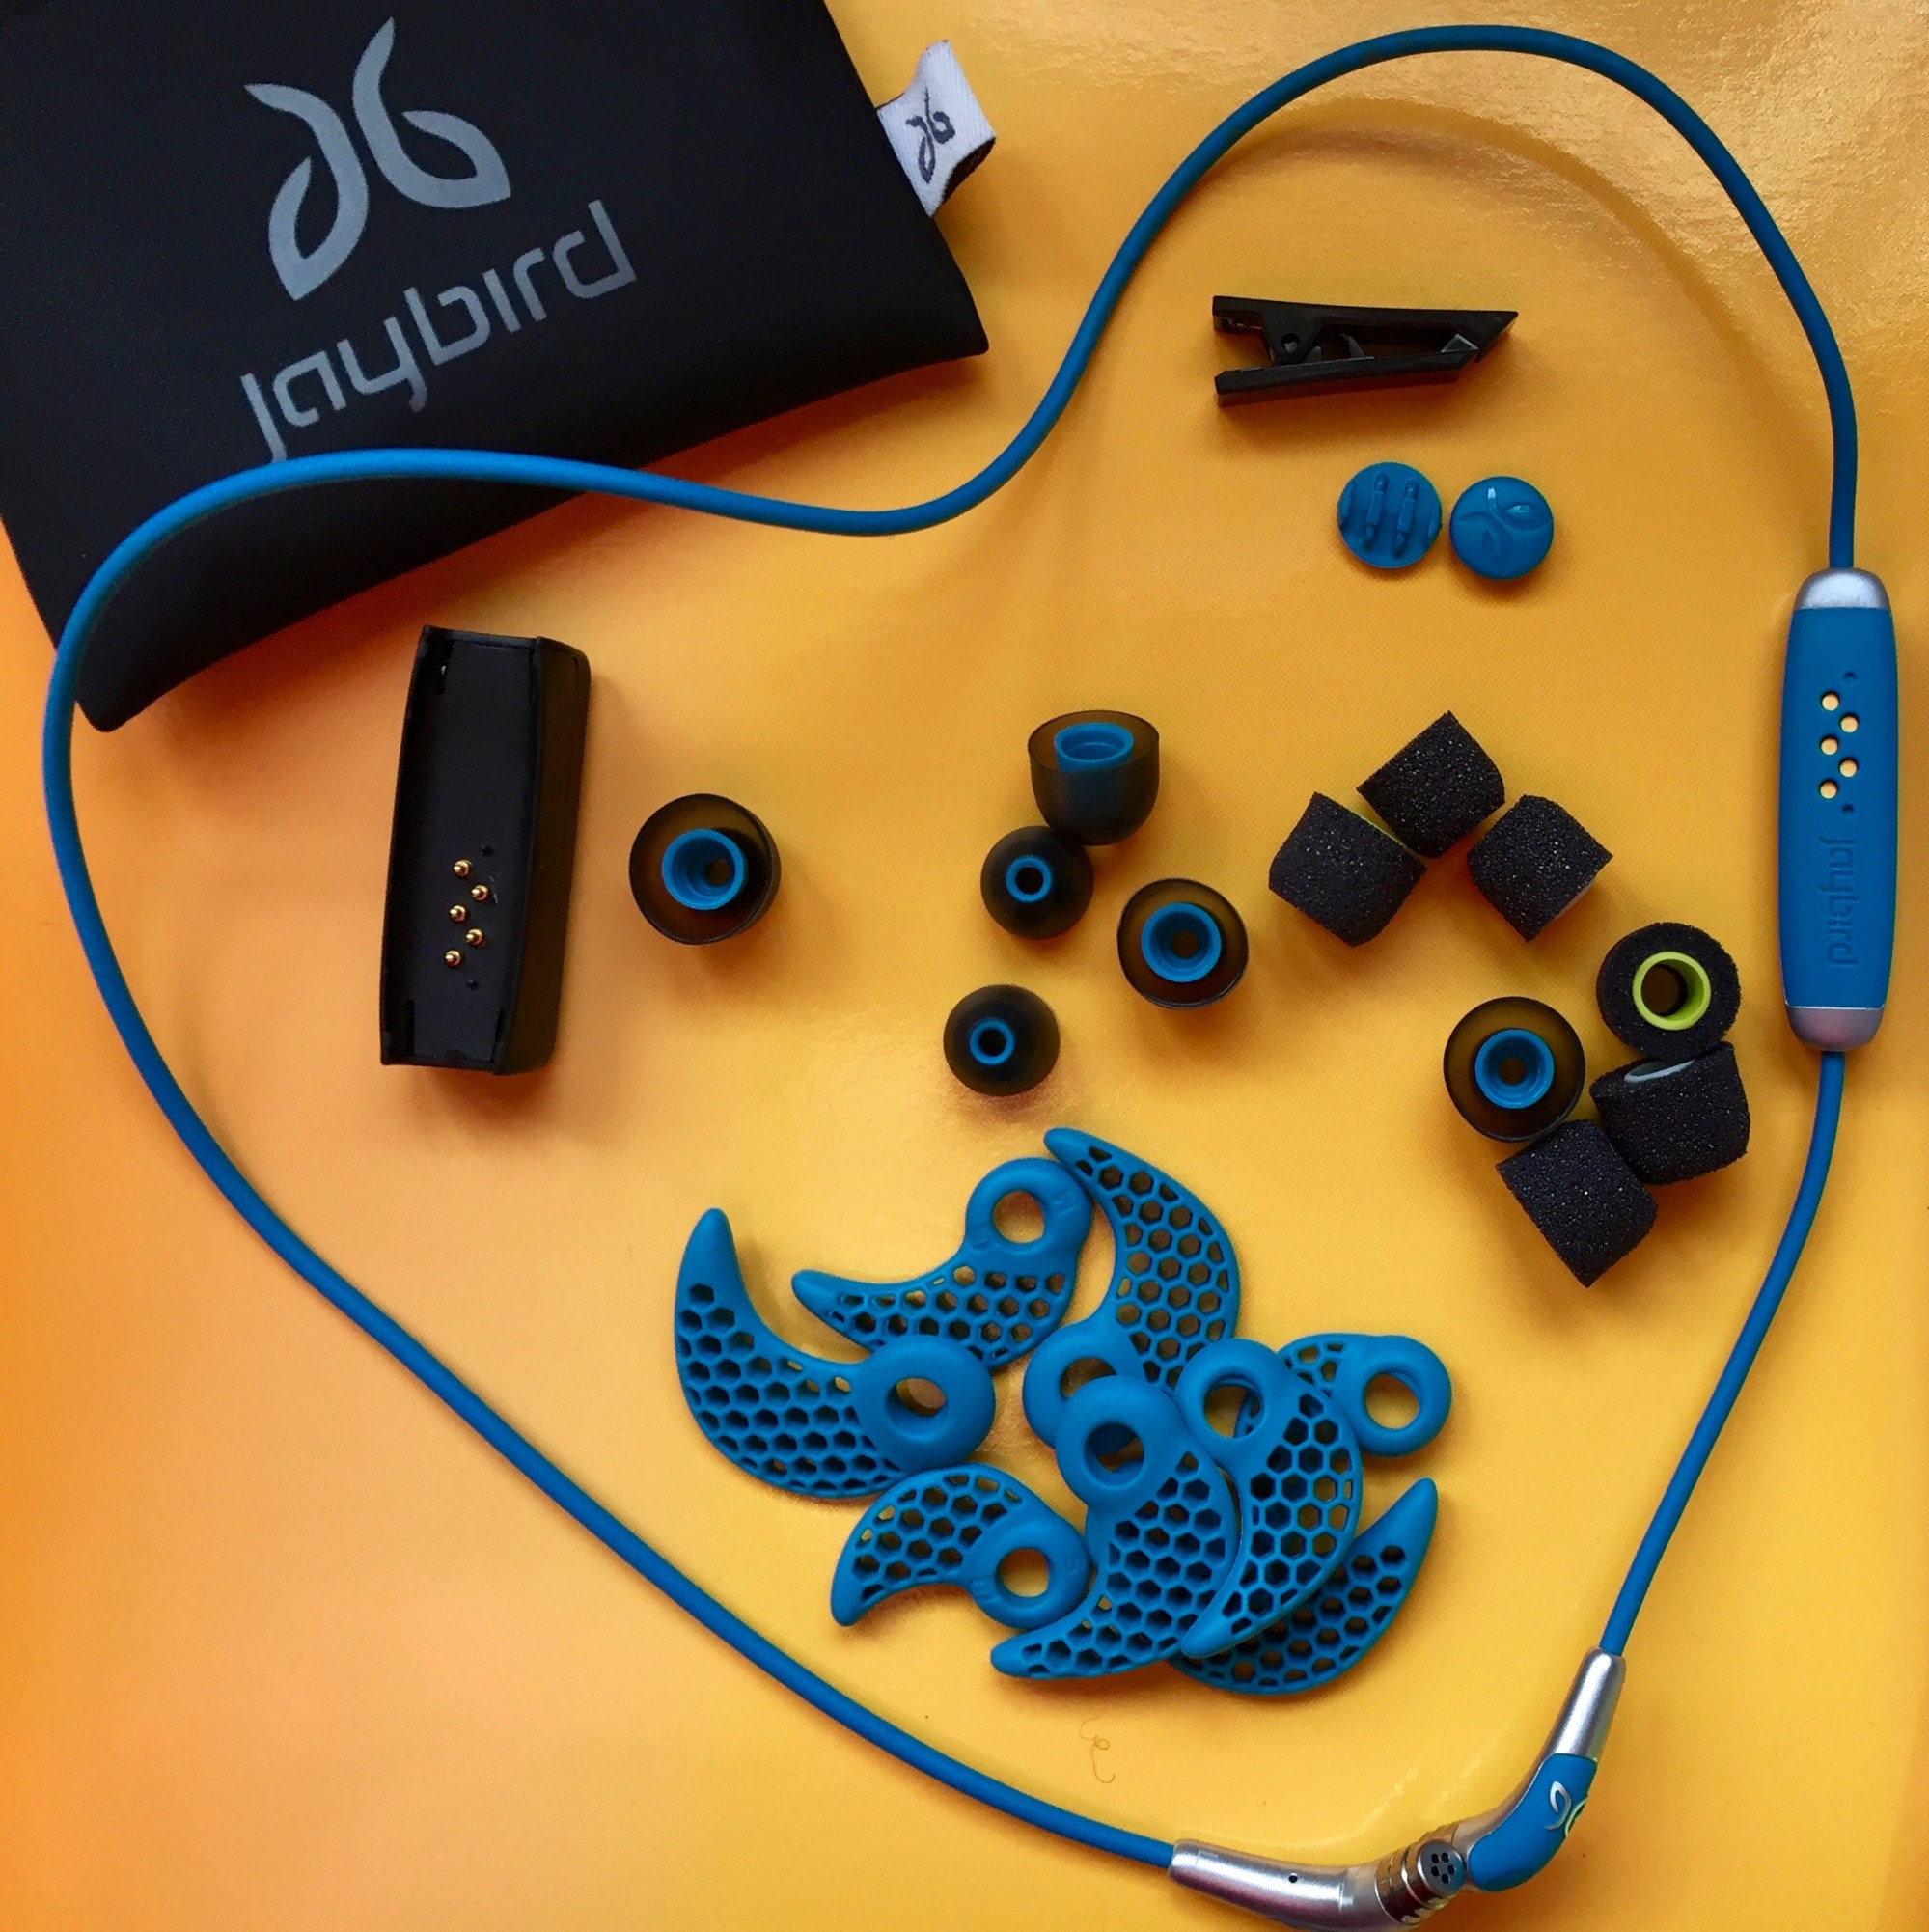 hight resolution of these wireless earbuds are designed with active people in mind you sure get a lot for your money in the box there is a cable with earbuds at each end and